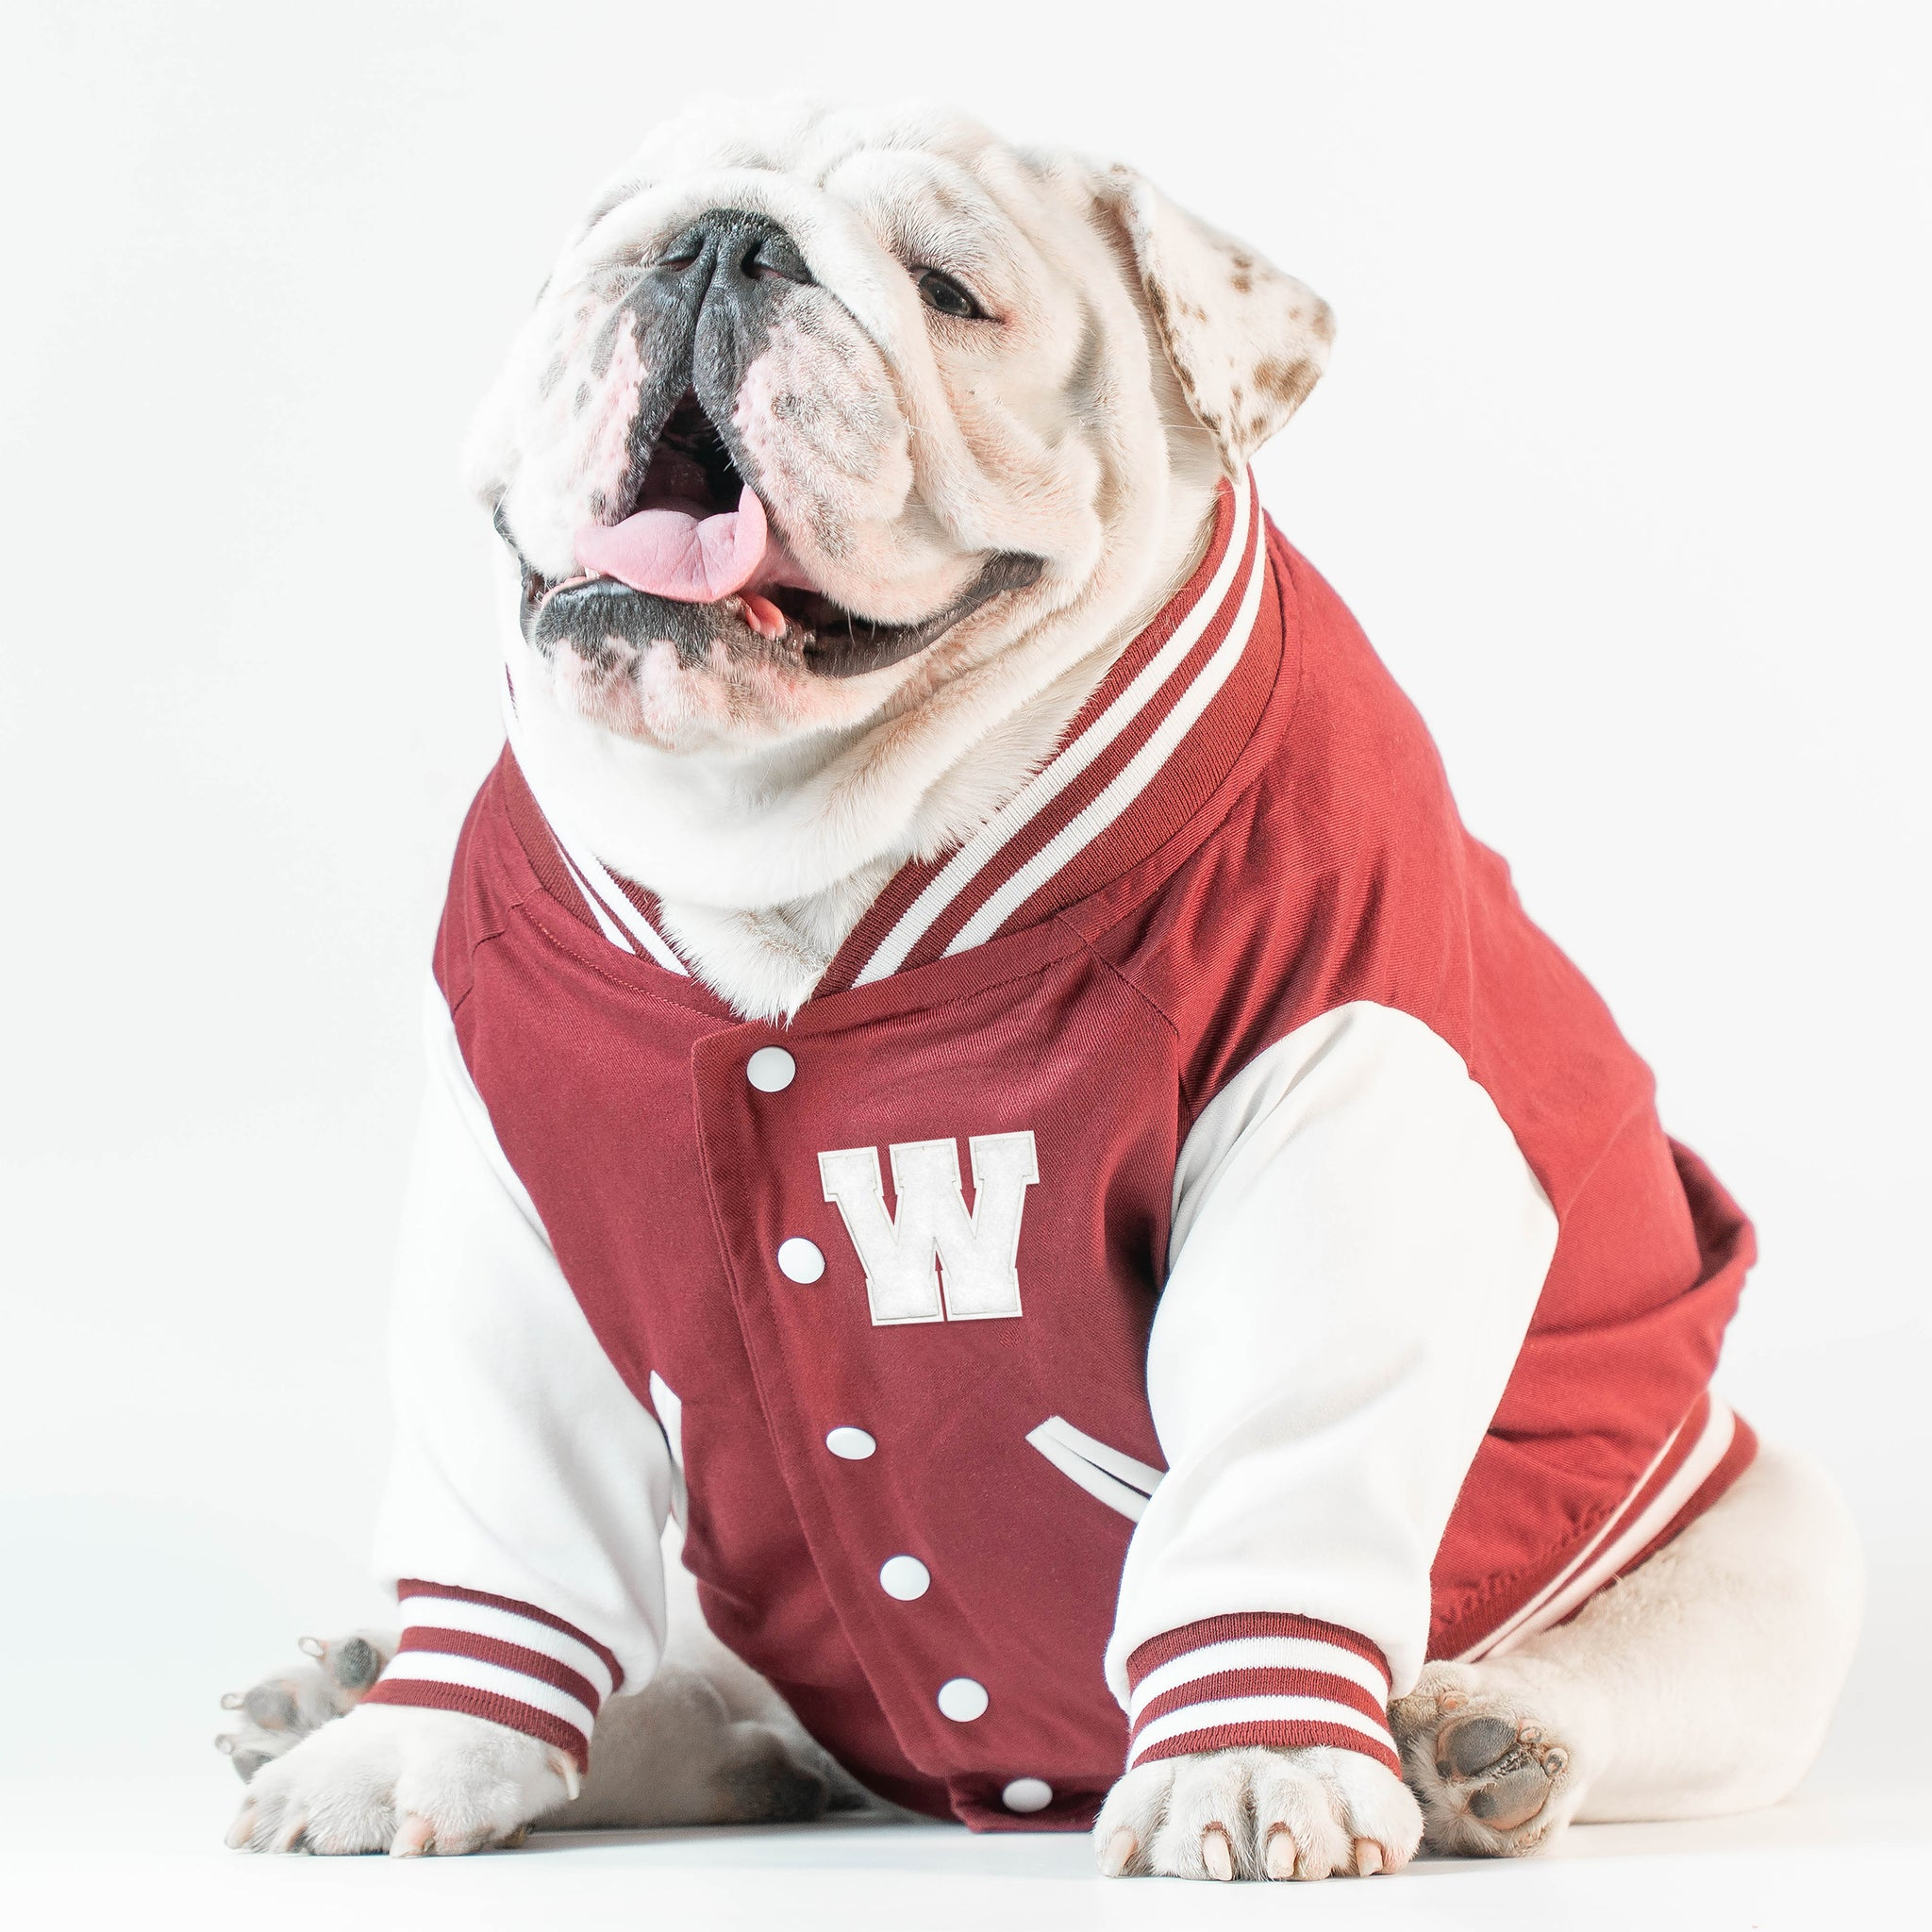 WONTON VARSITY BOMBER Jacket in burgundy (Customizable Chest Letter) - WontonCollection